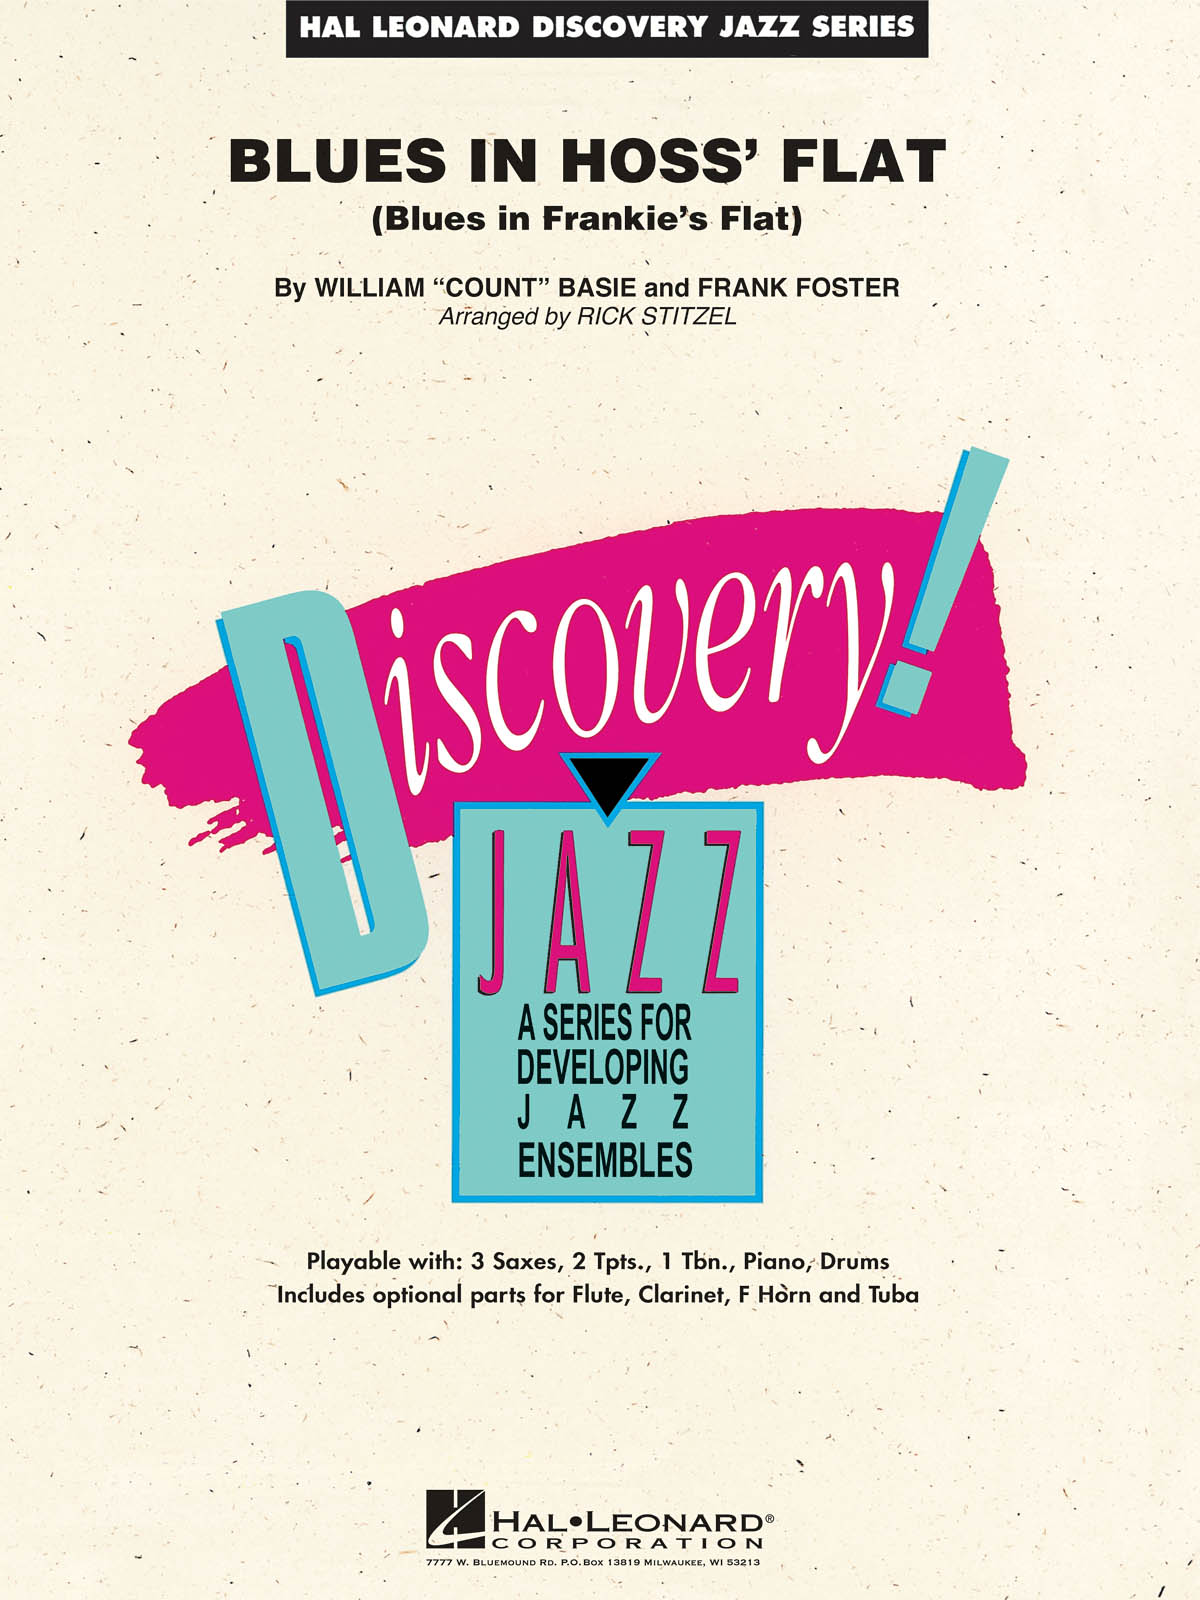 Blues In Hoss' Flat (Blues In Frankie's Flat): Discovery Jazz